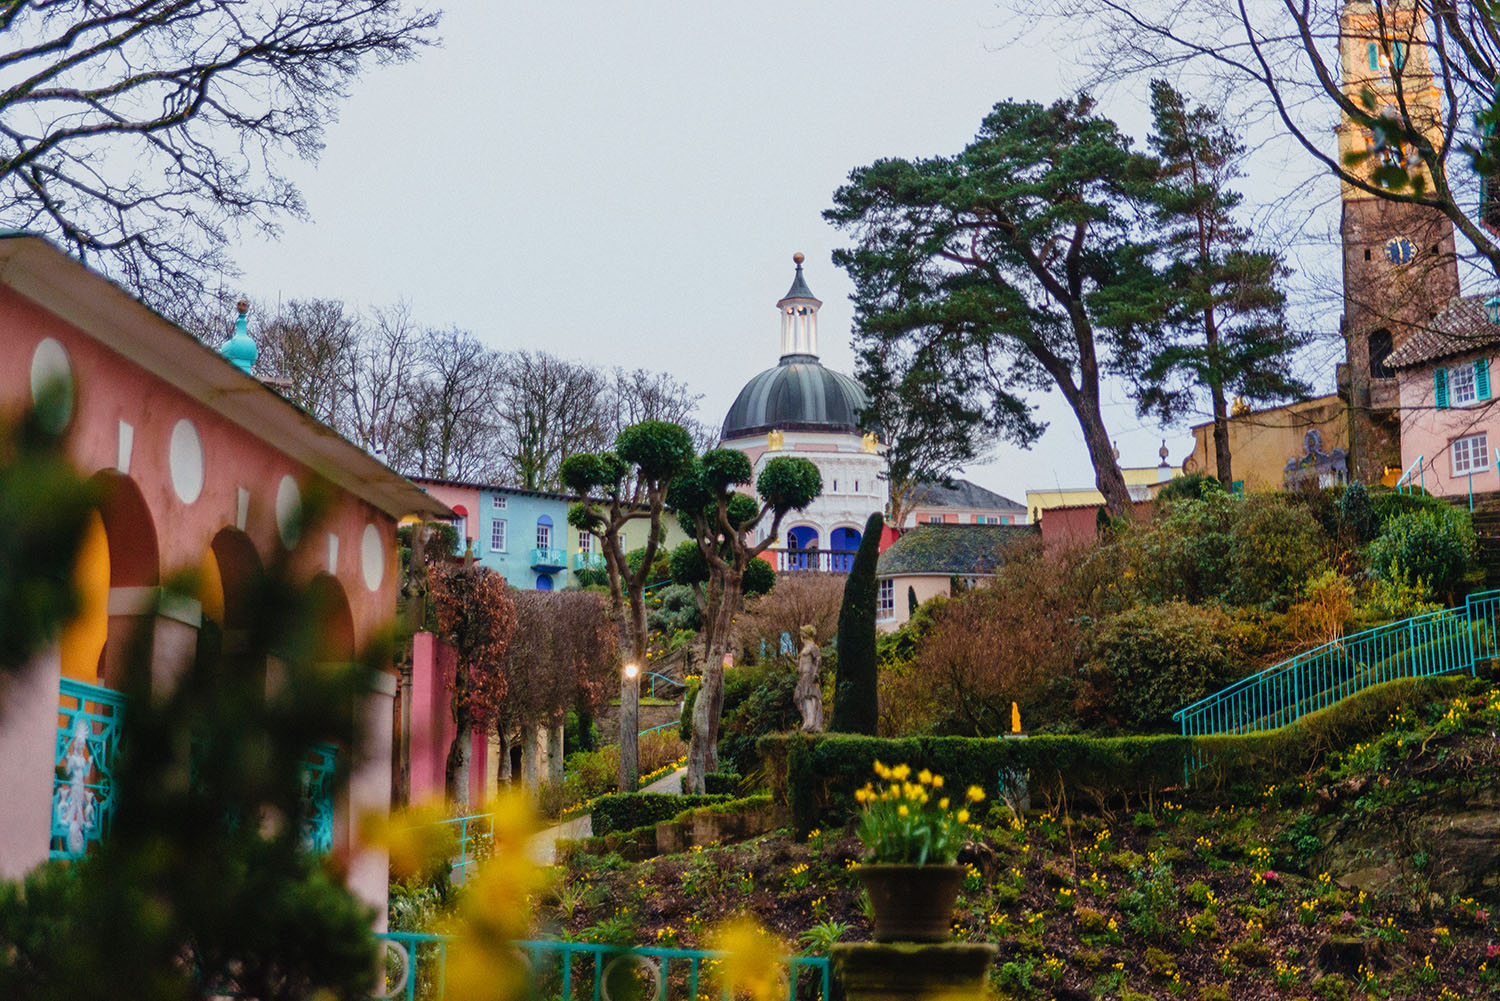 Fantasy village Portmeirion, Wales